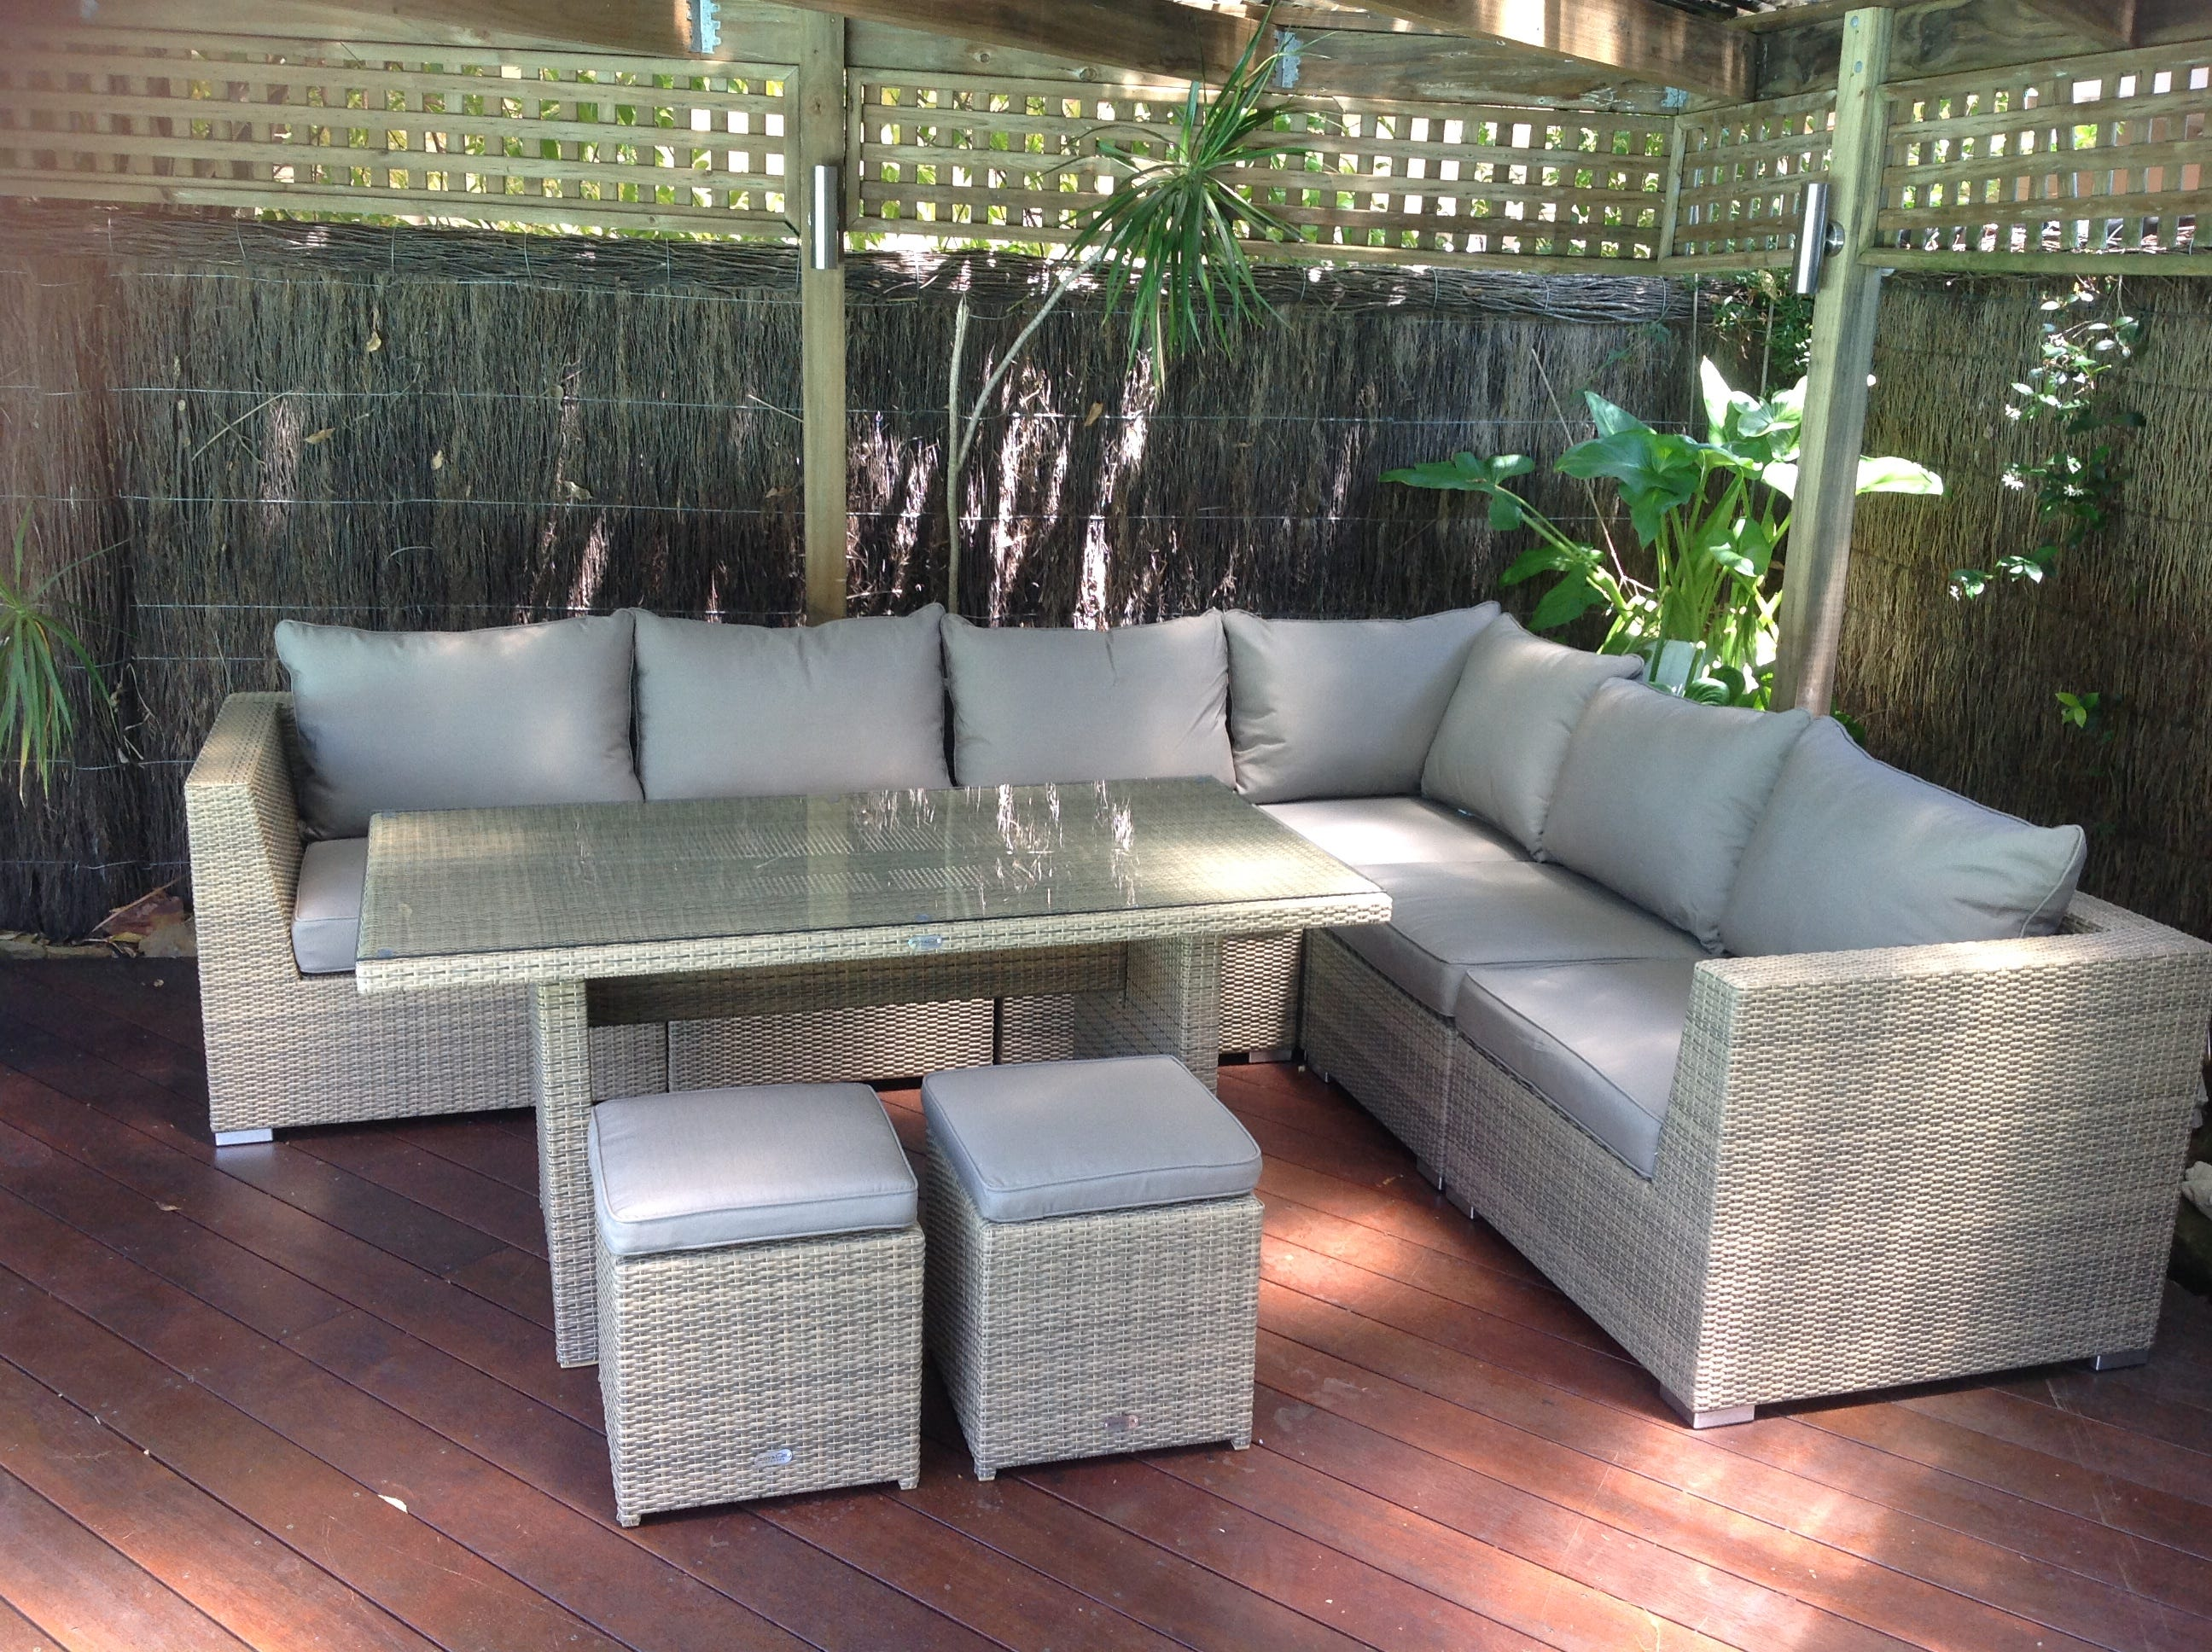 Outdoor furniture evolution dining out in comfort for Outdoor patio furniture